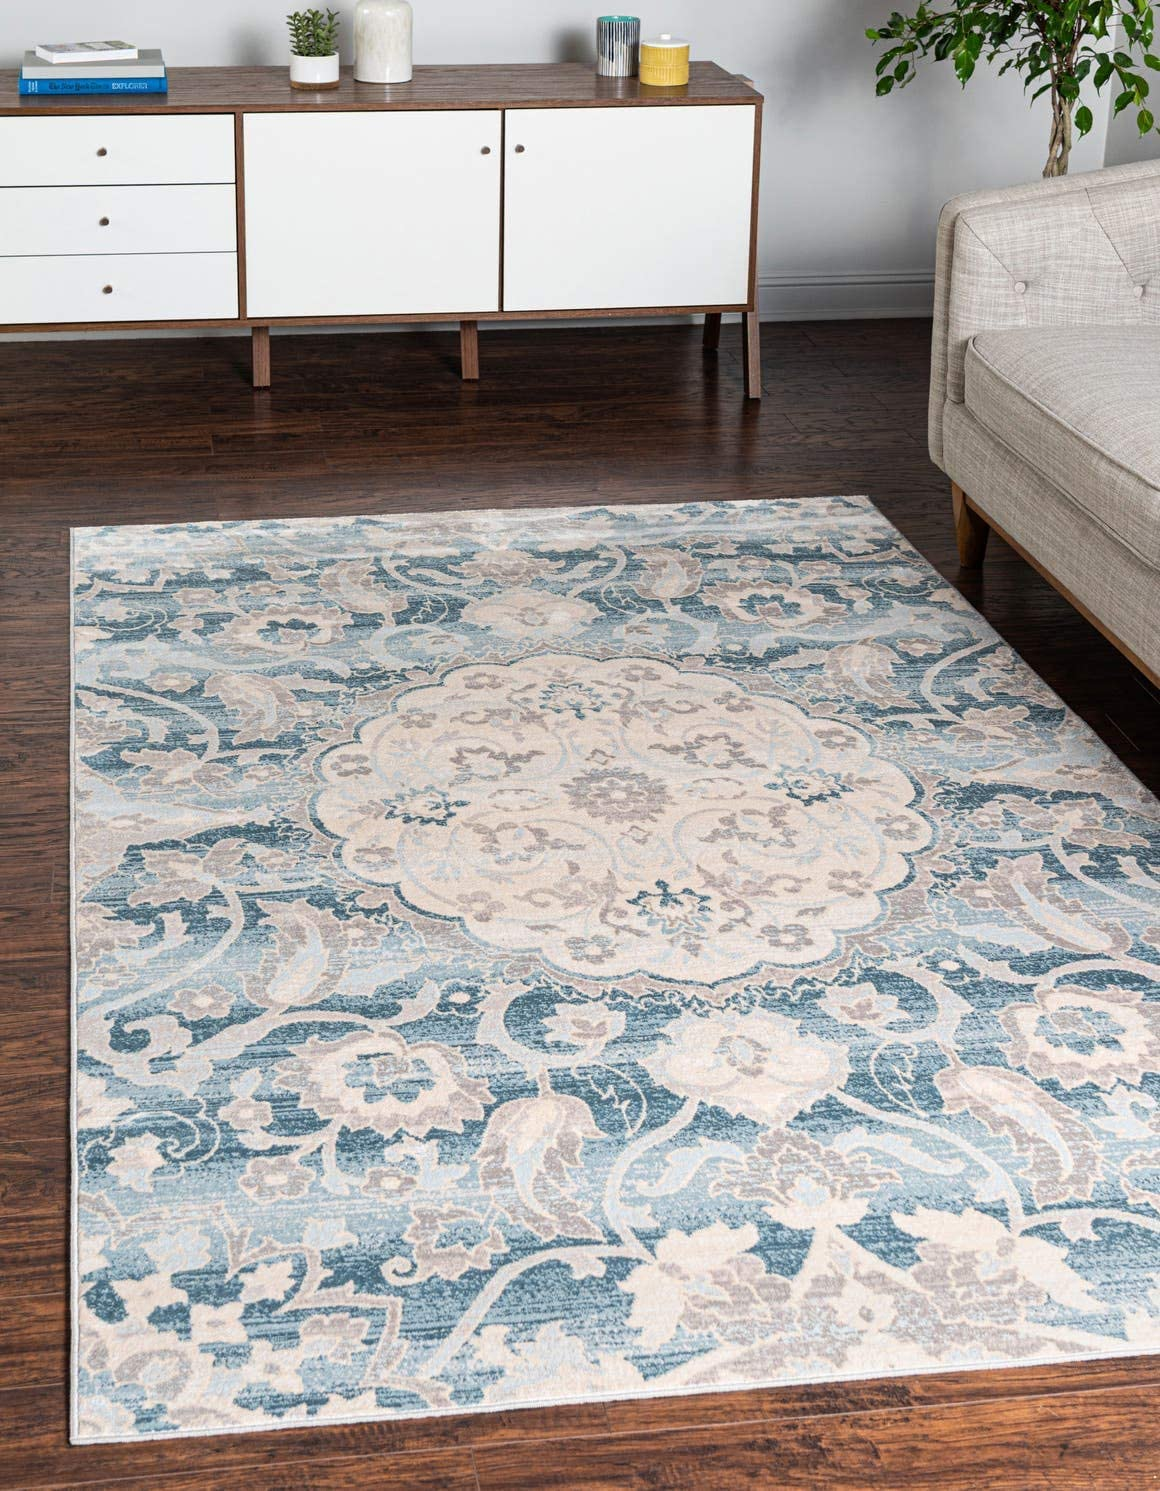 Unique Loom Paris Collection Pastel Tones Traditional Distressed Blue Area Rug 8 0 x 10 0